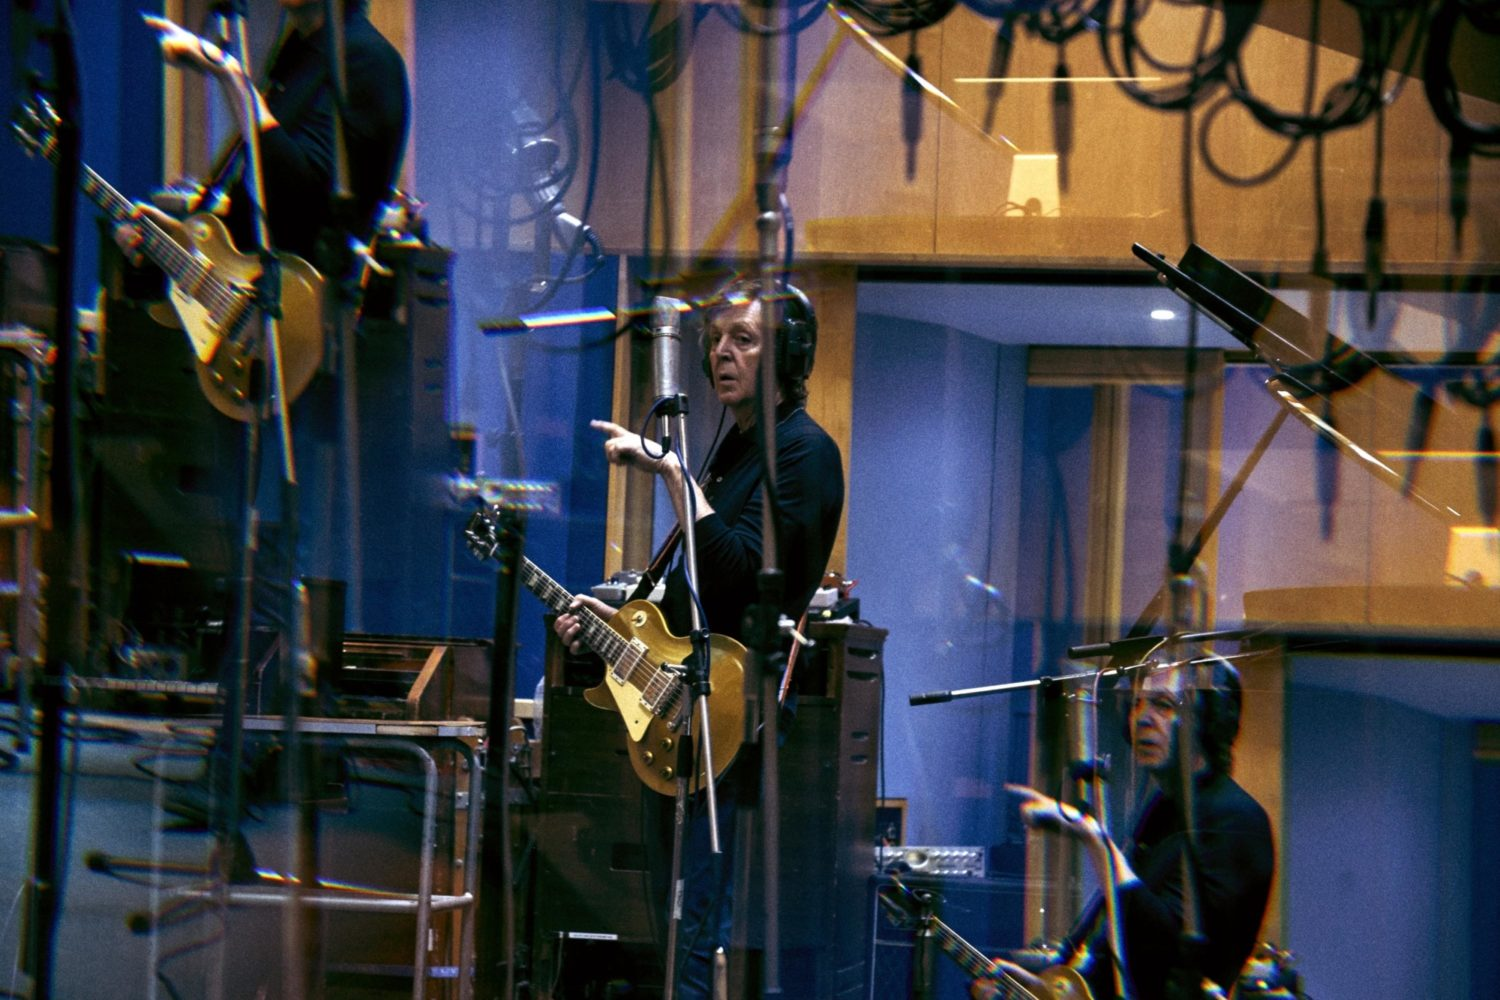 Paul McCartney shares new track 'Fuh You', confirms 'Egypt Station' tracklisting